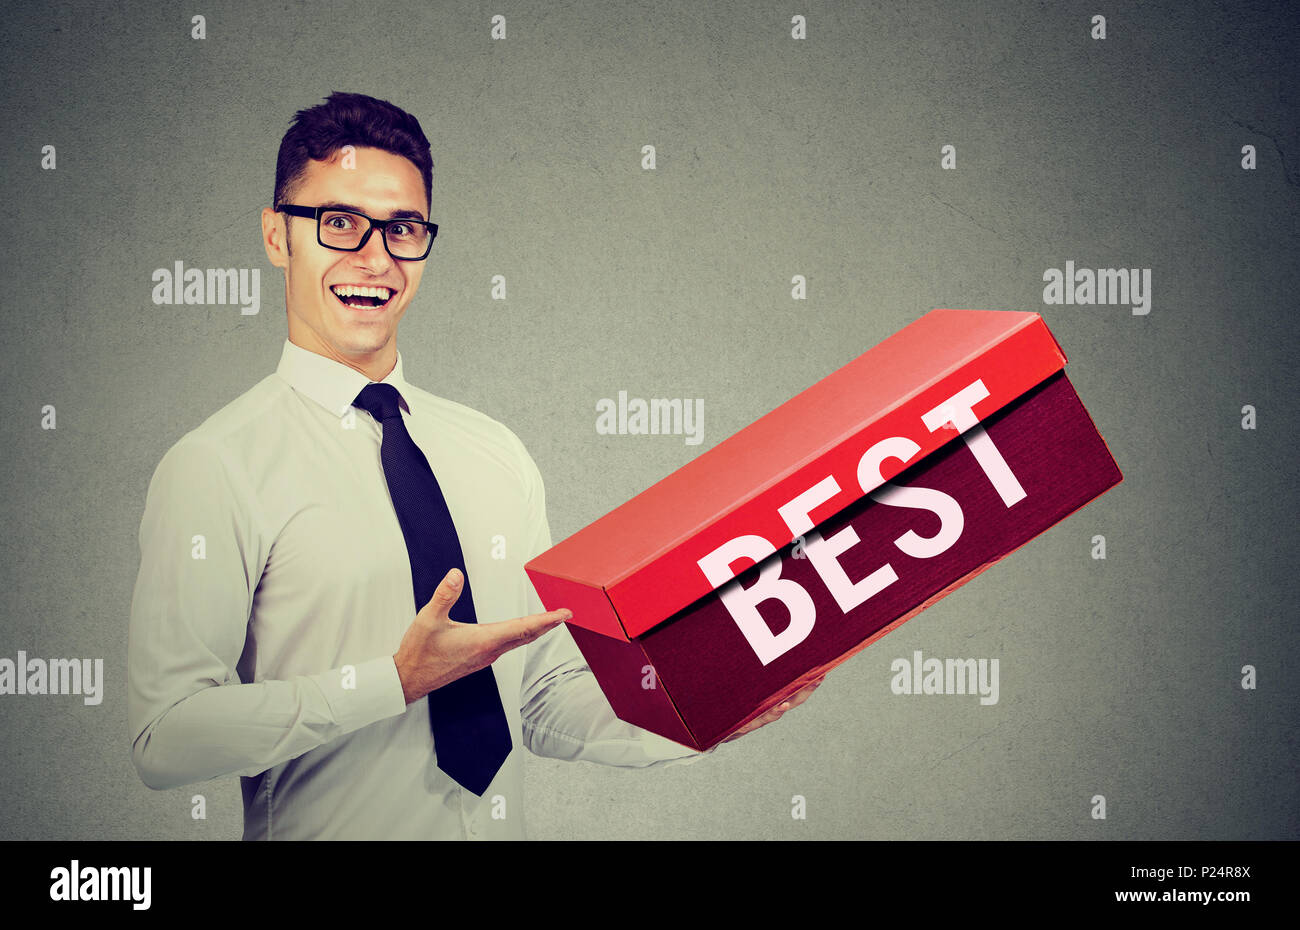 Smiling salesman business man advertising his best product in a big red box - Stock Image